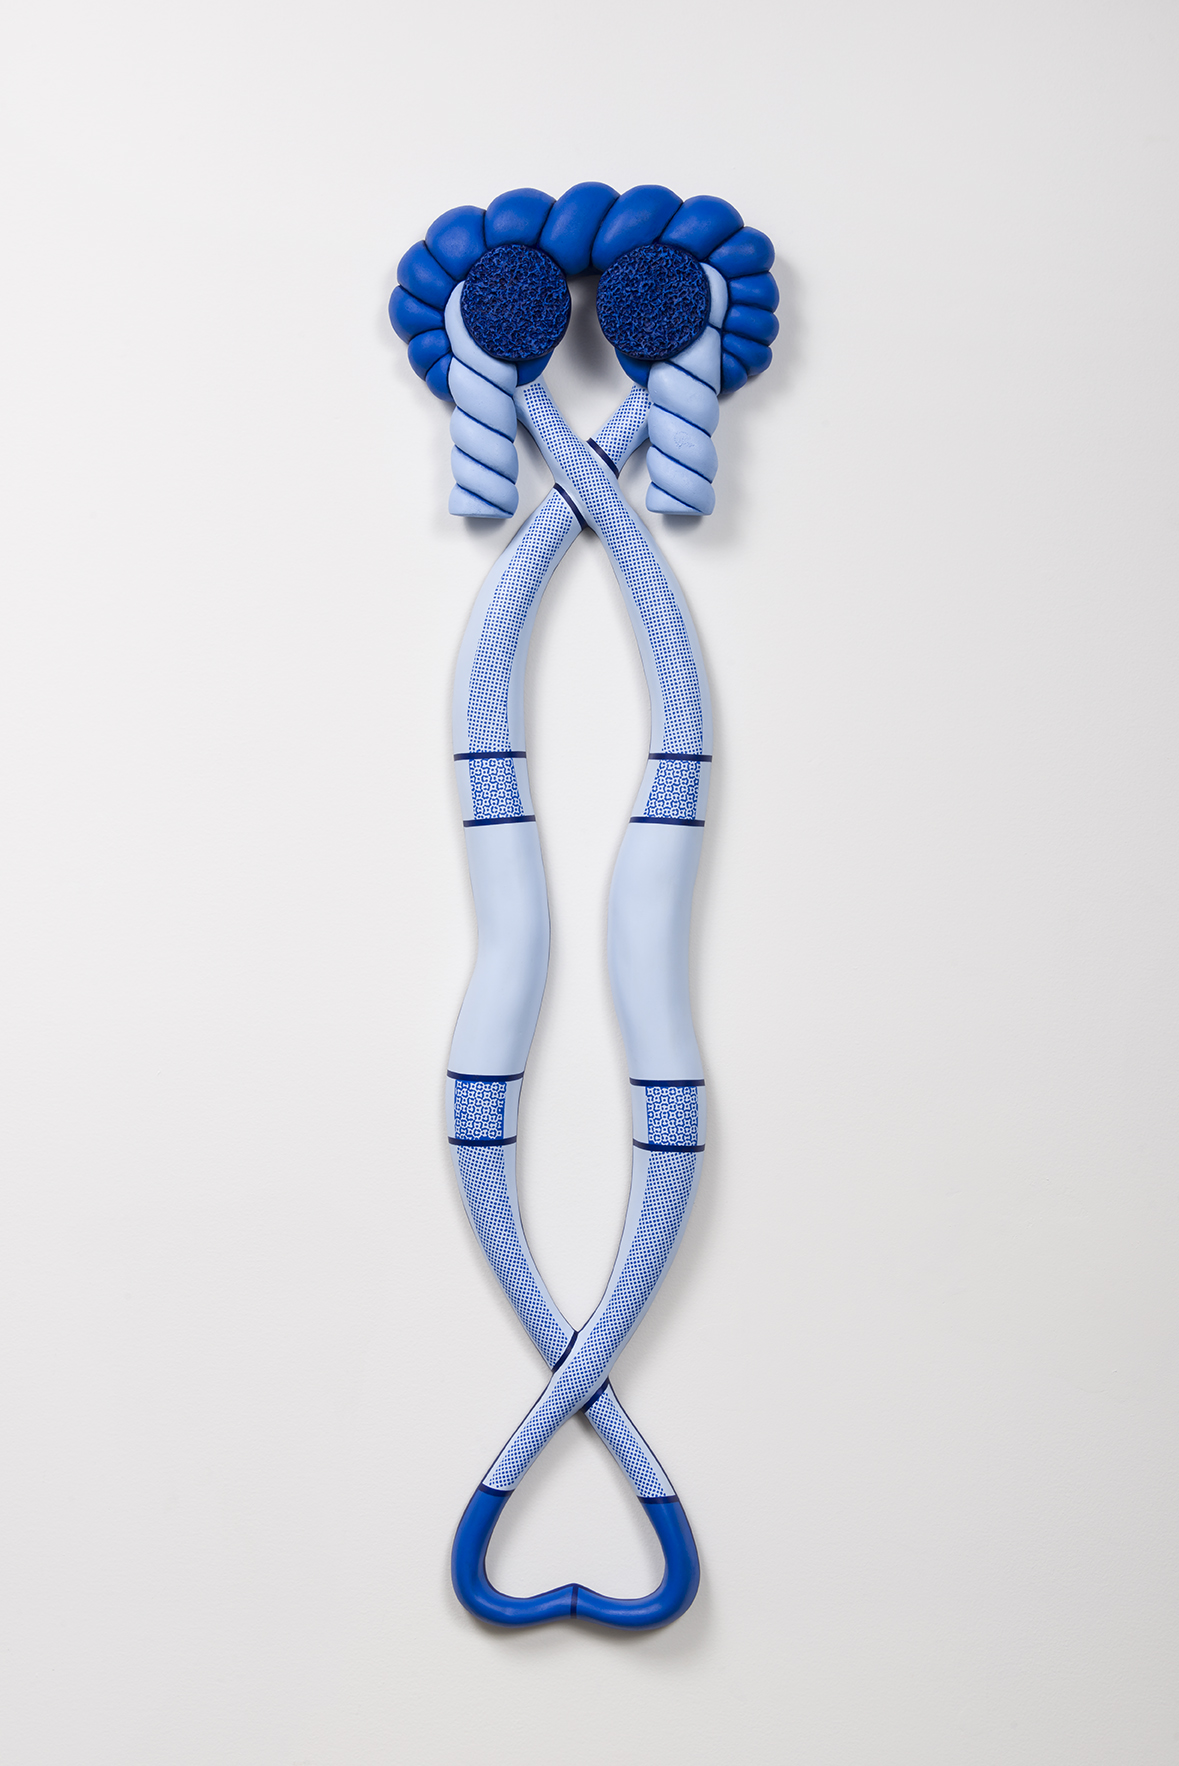 Blue Warp, 2016  Polychromed Urethane  52 x 14 x 3 inches